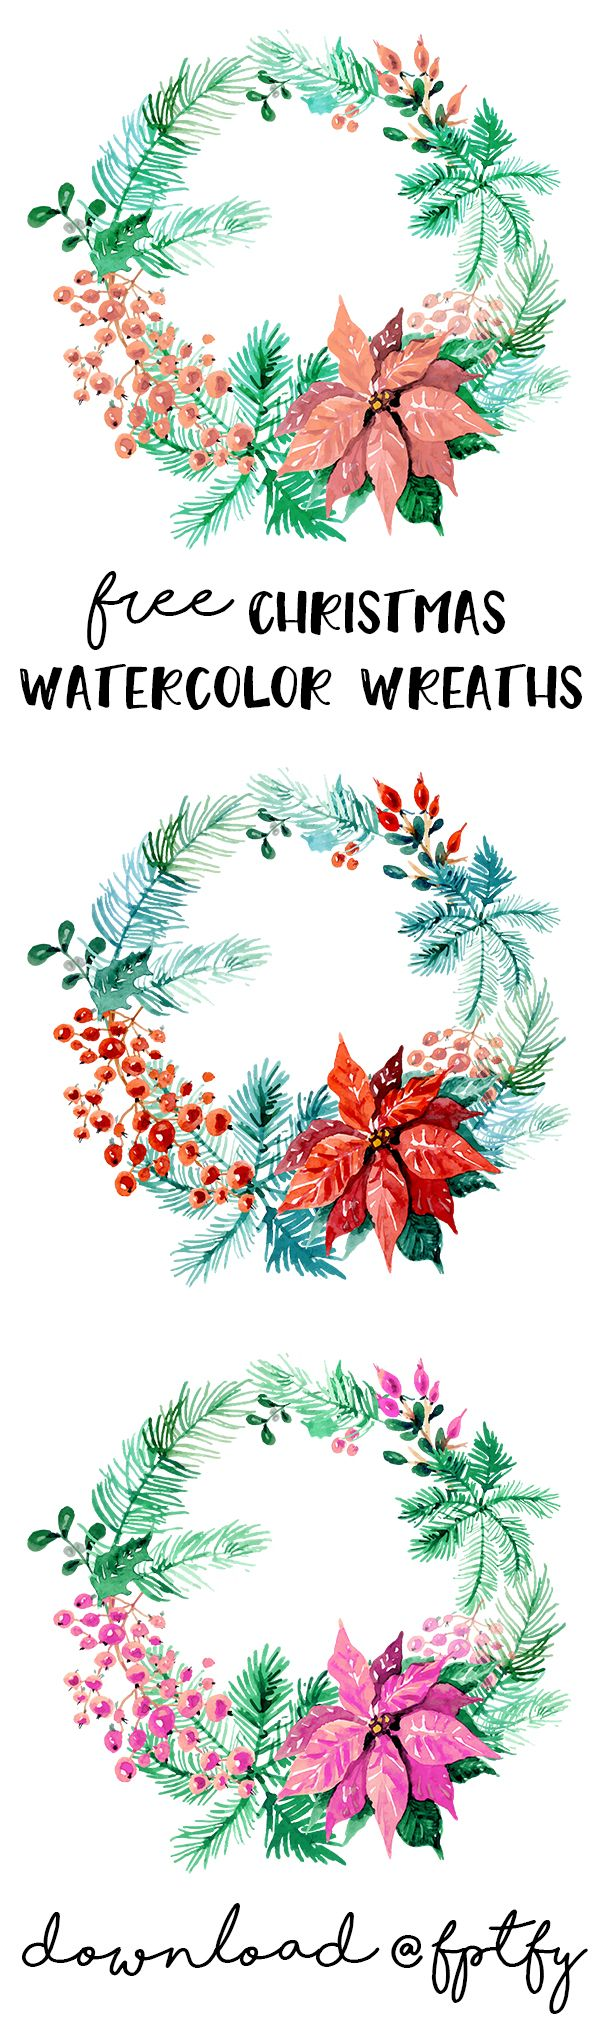 Free Christmas Watercolor Wreaths.